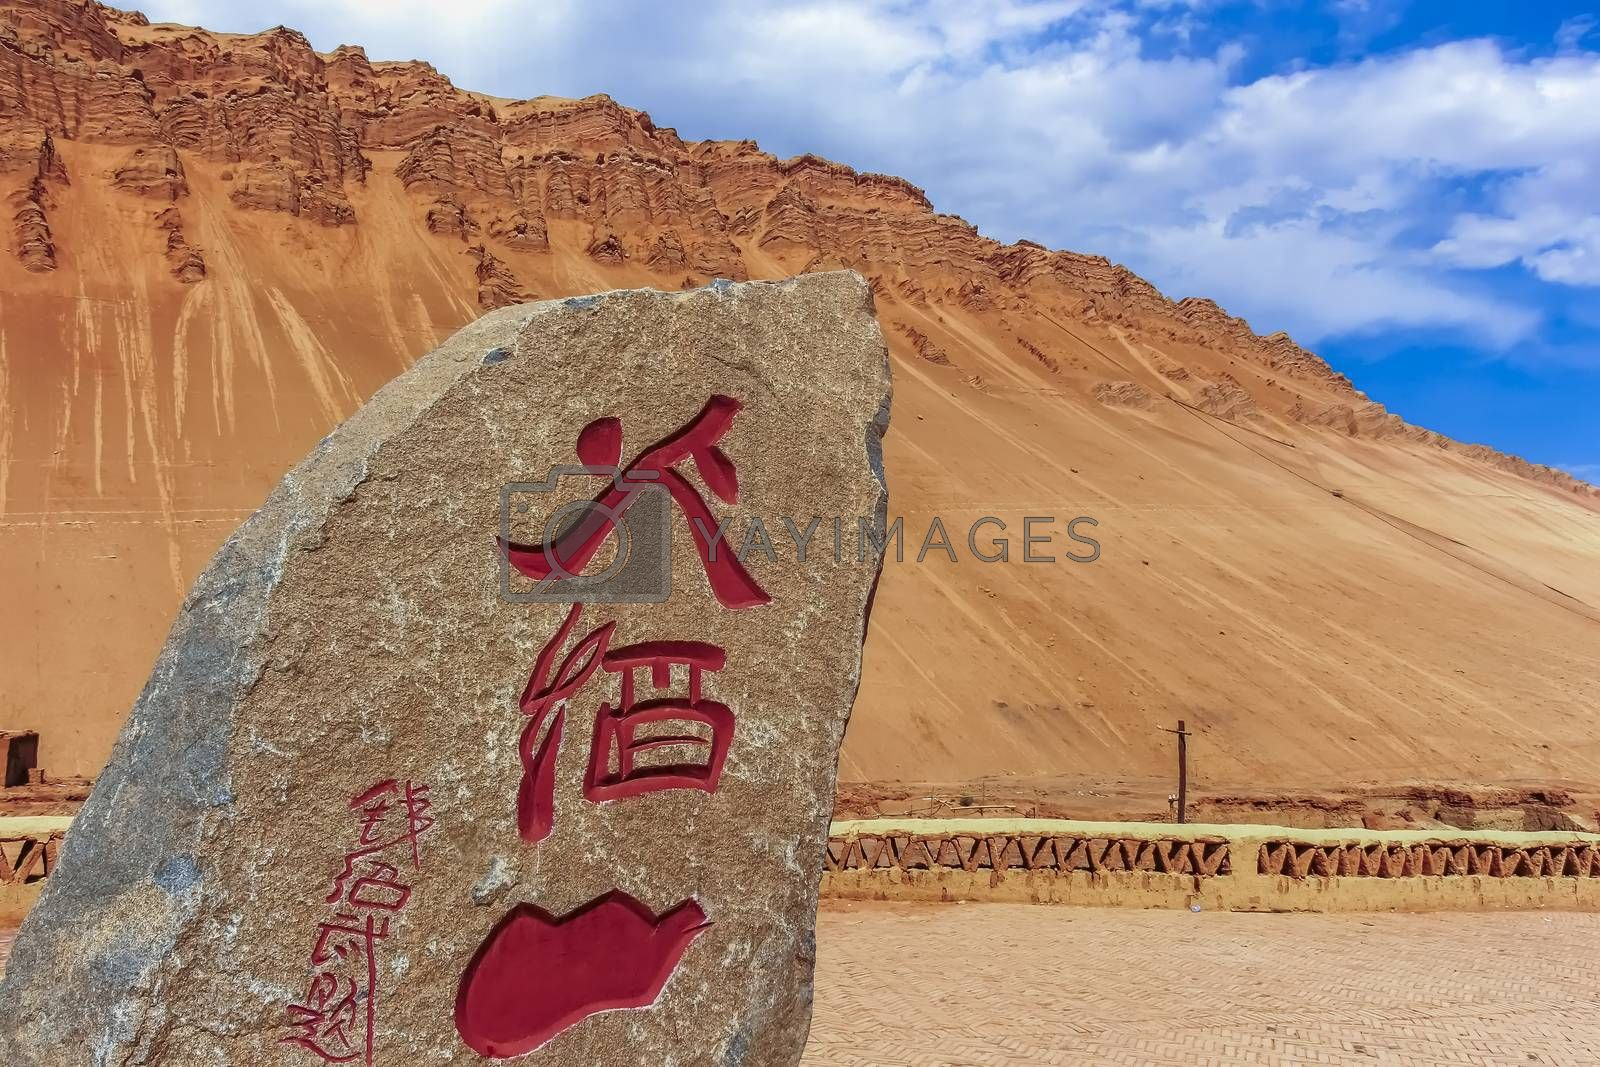 The Flaming Mountains is part of the Turpan Basin in Xinjiang, China